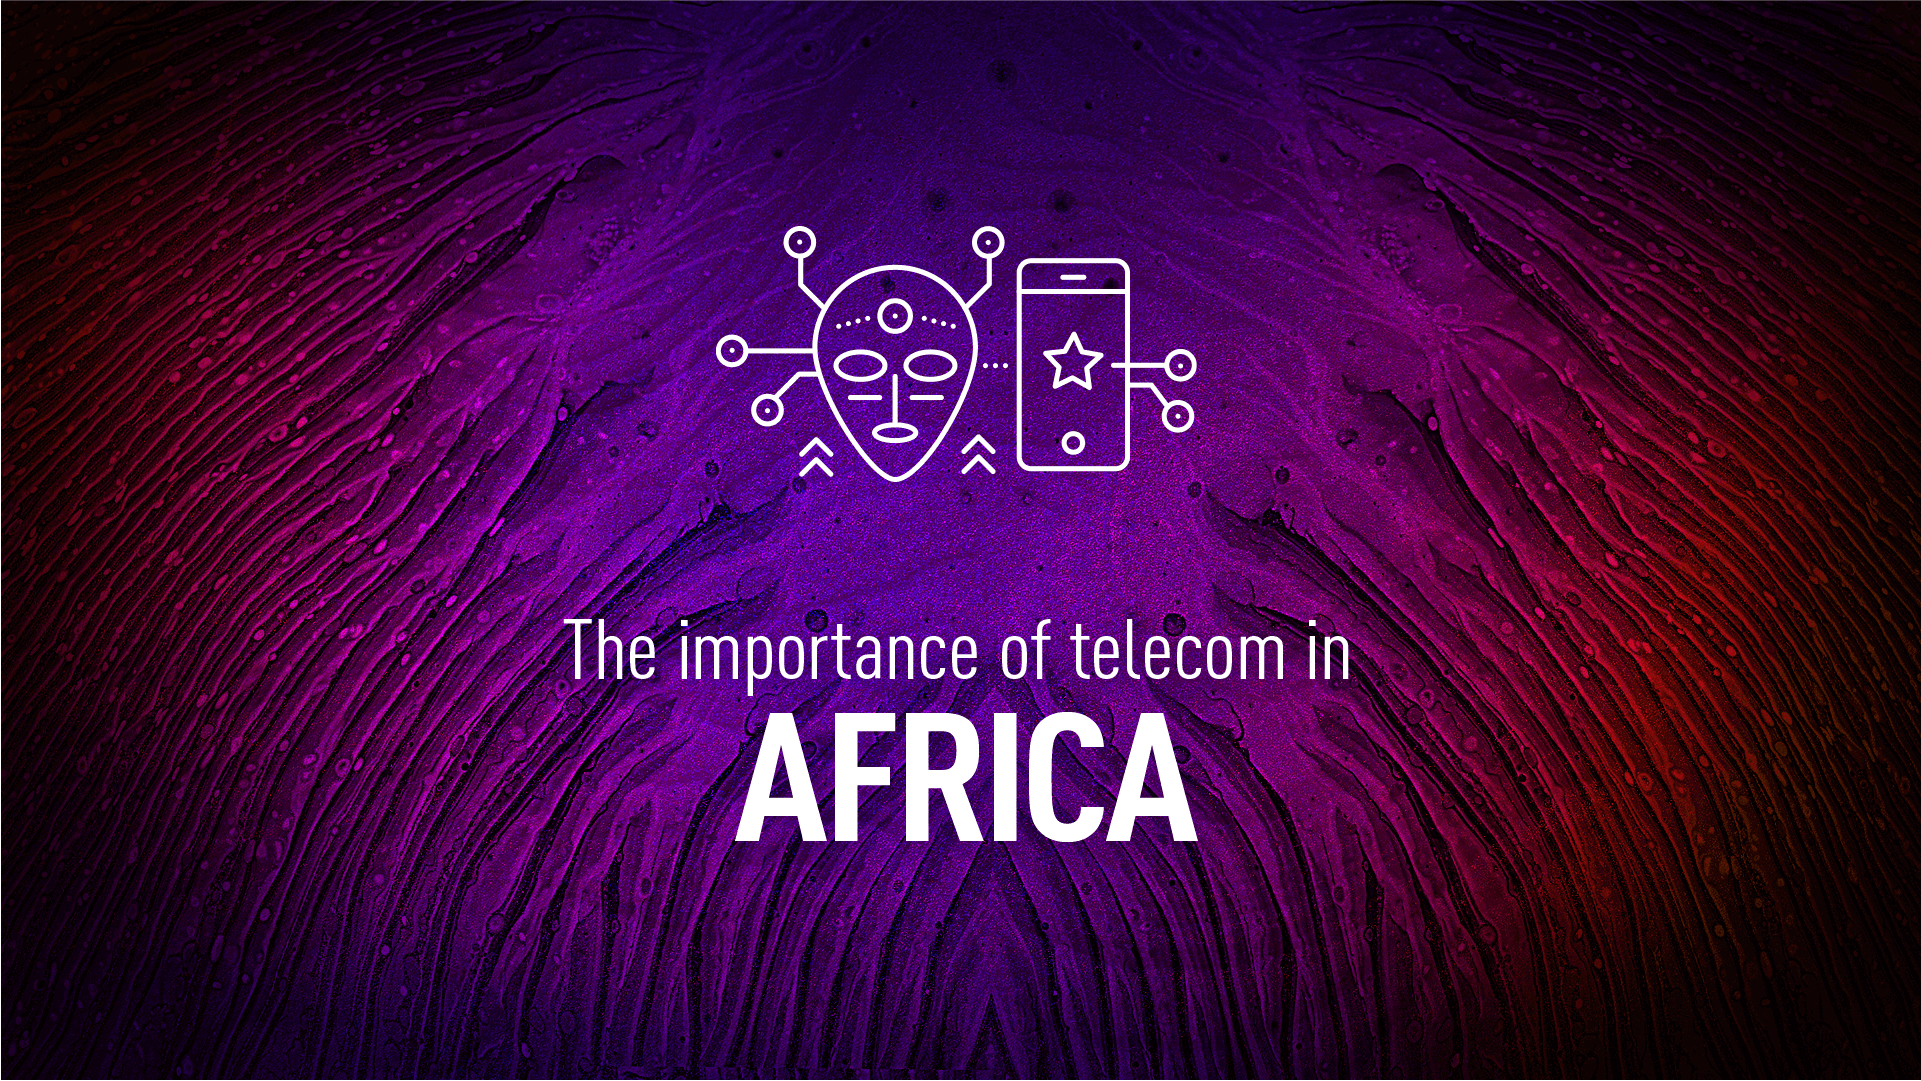 The importance of telecom in Africa